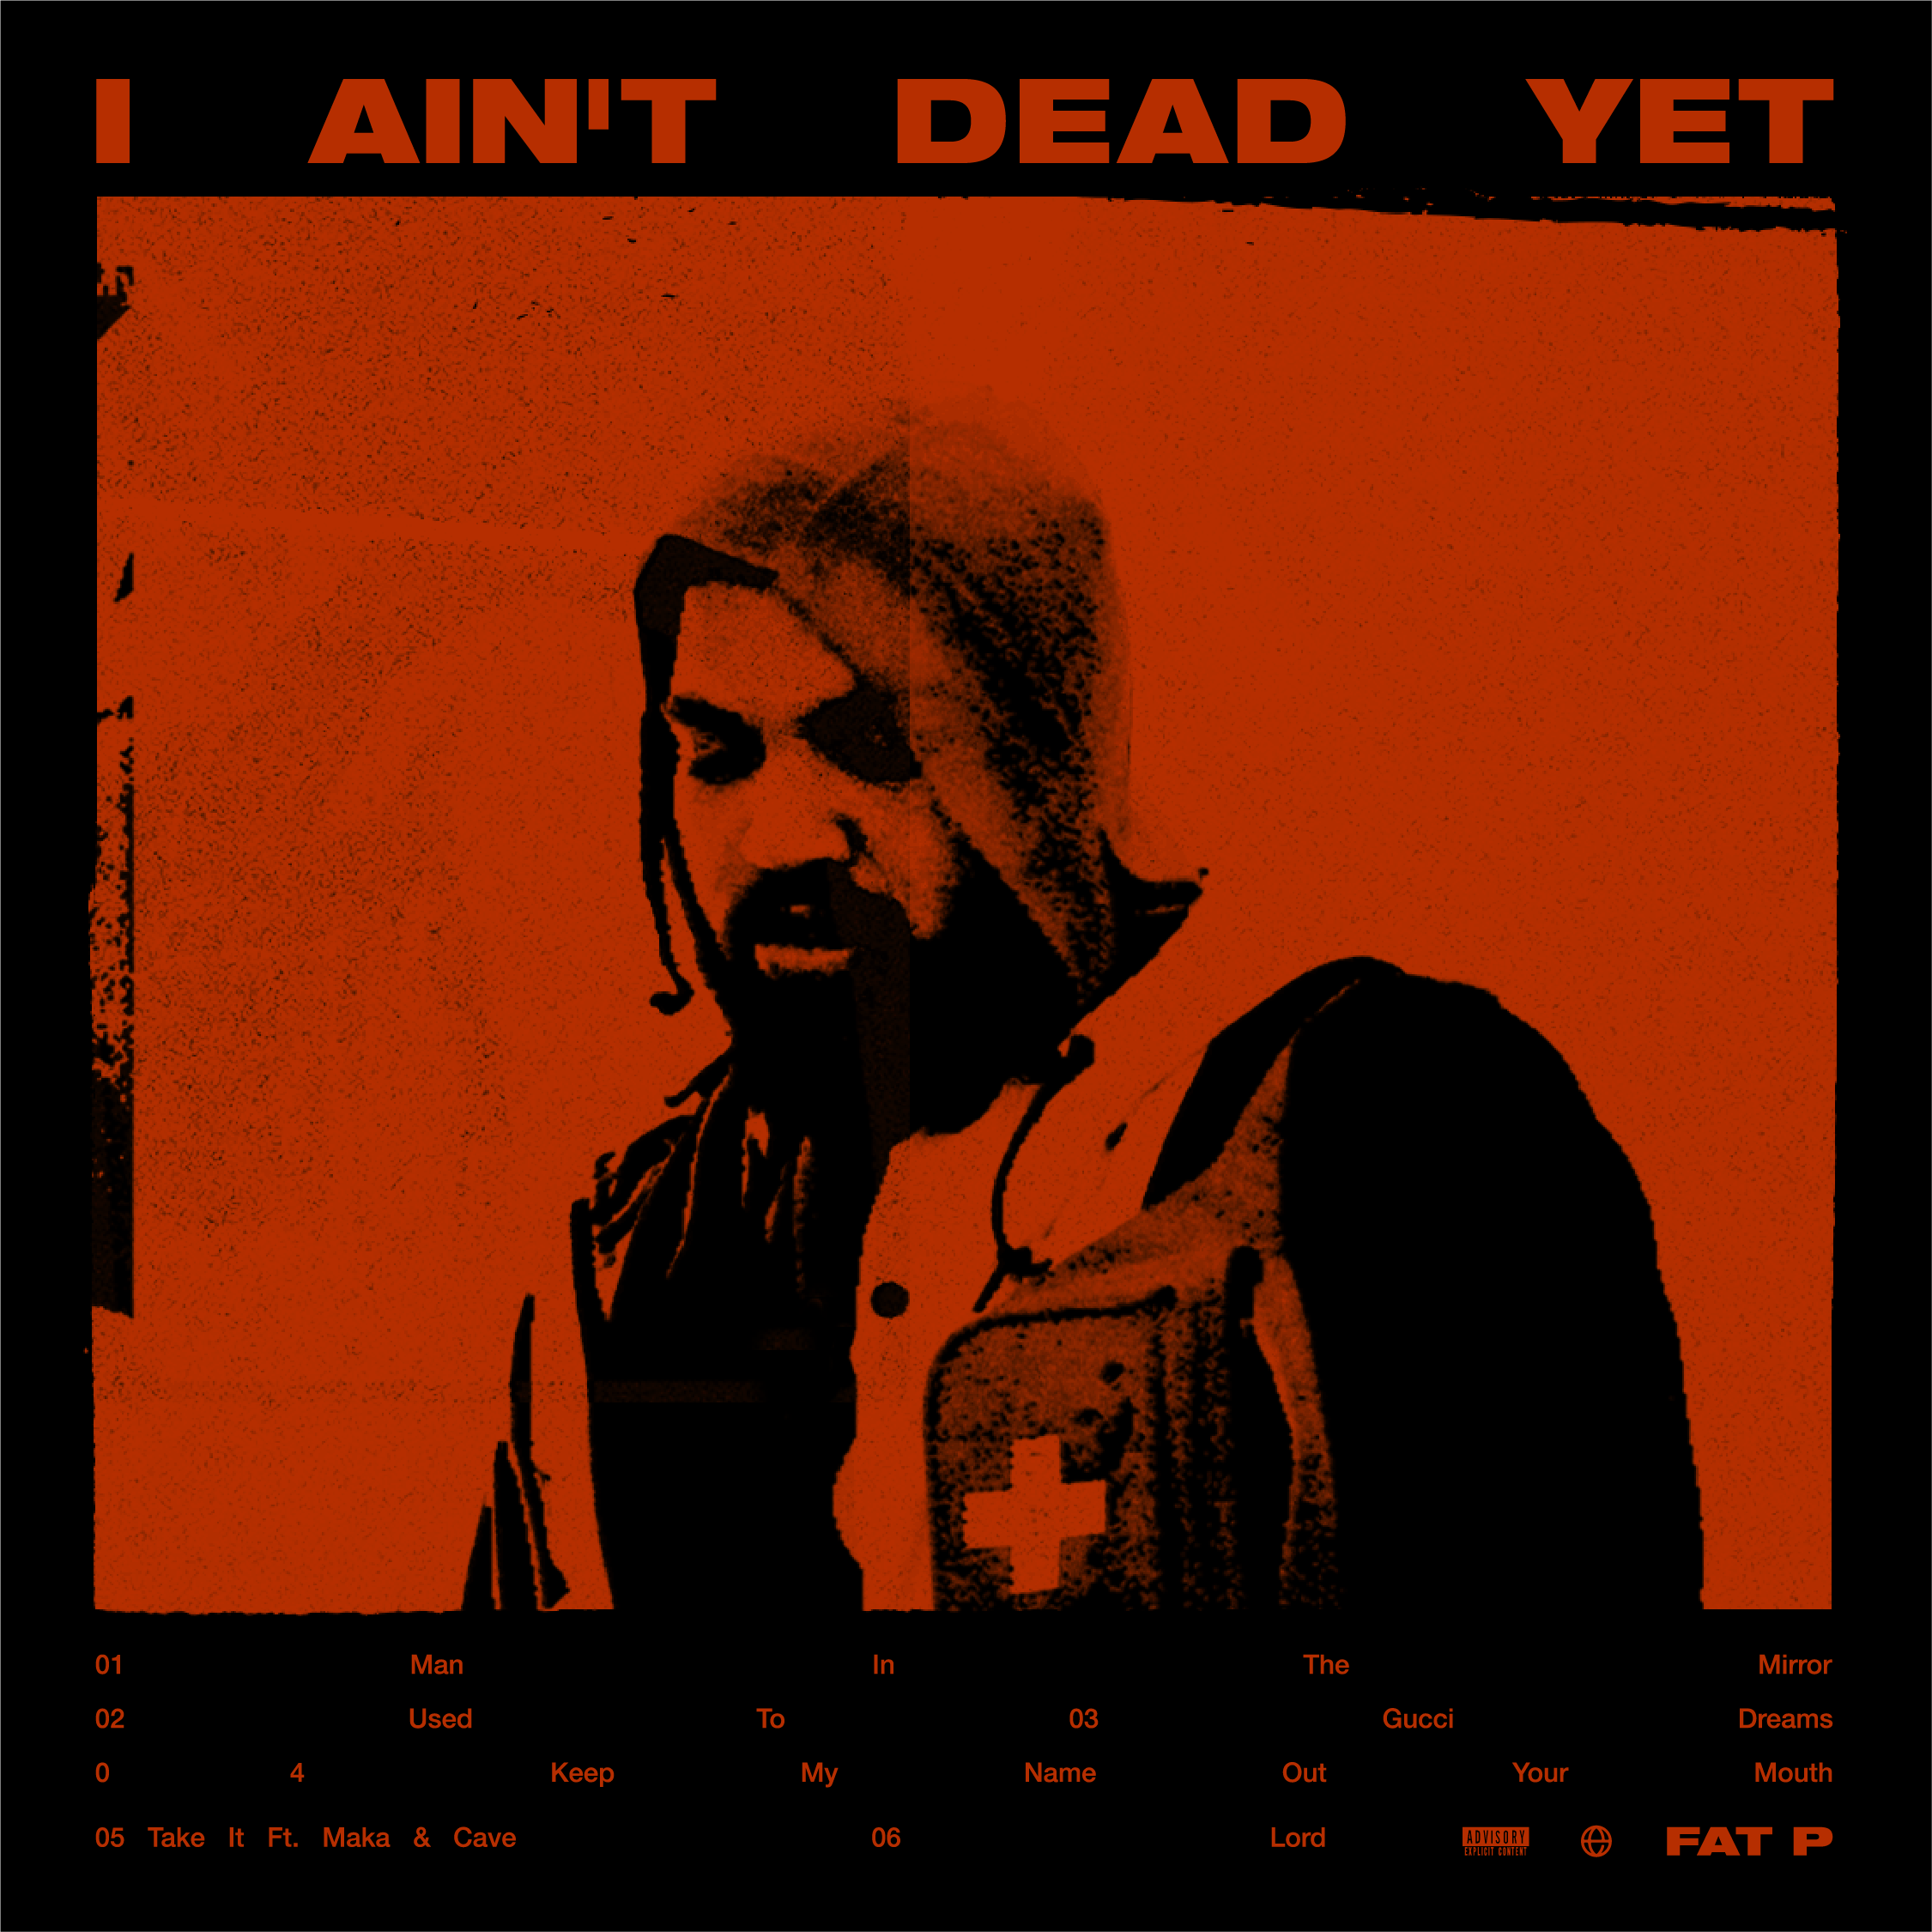 I_Aint_Dead_Yet_Artwork_01.png